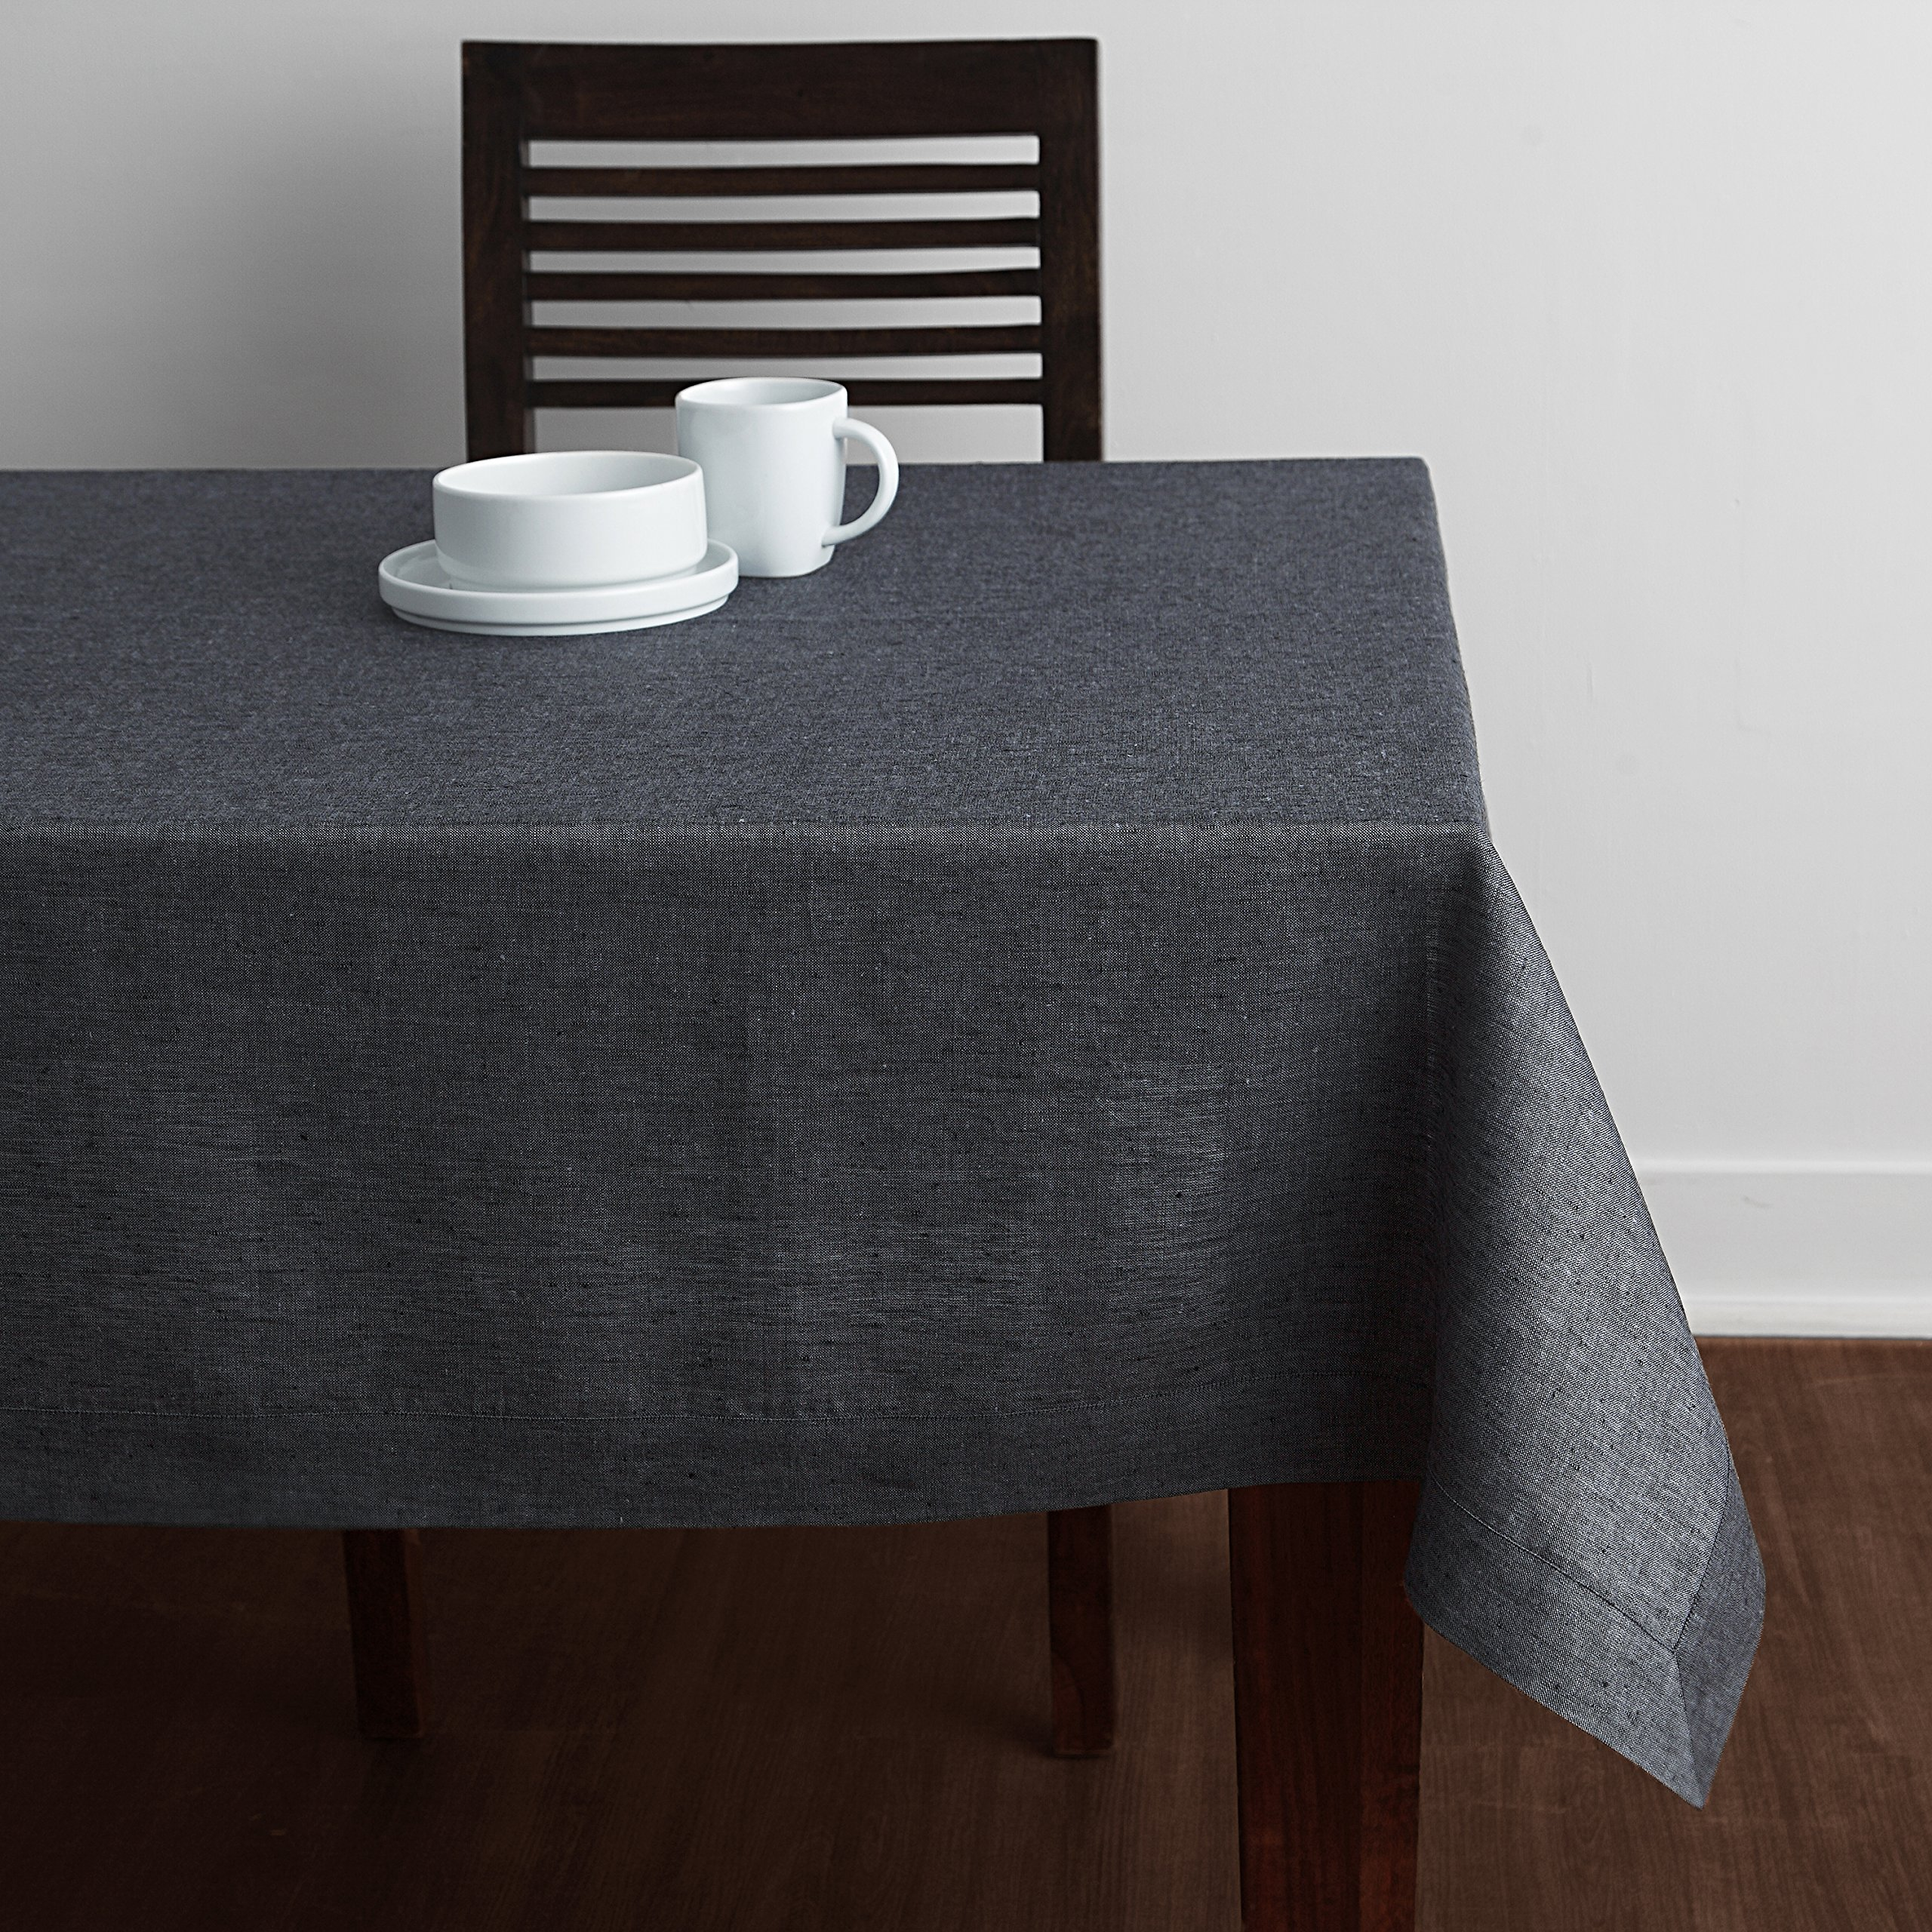 Solino Home 100% Linen Tablecloth - 60 x 90 Inch Grey, Natural Fabric, European Flax - Athena Rectangular Tablecloth for Indoor and Outdoor use